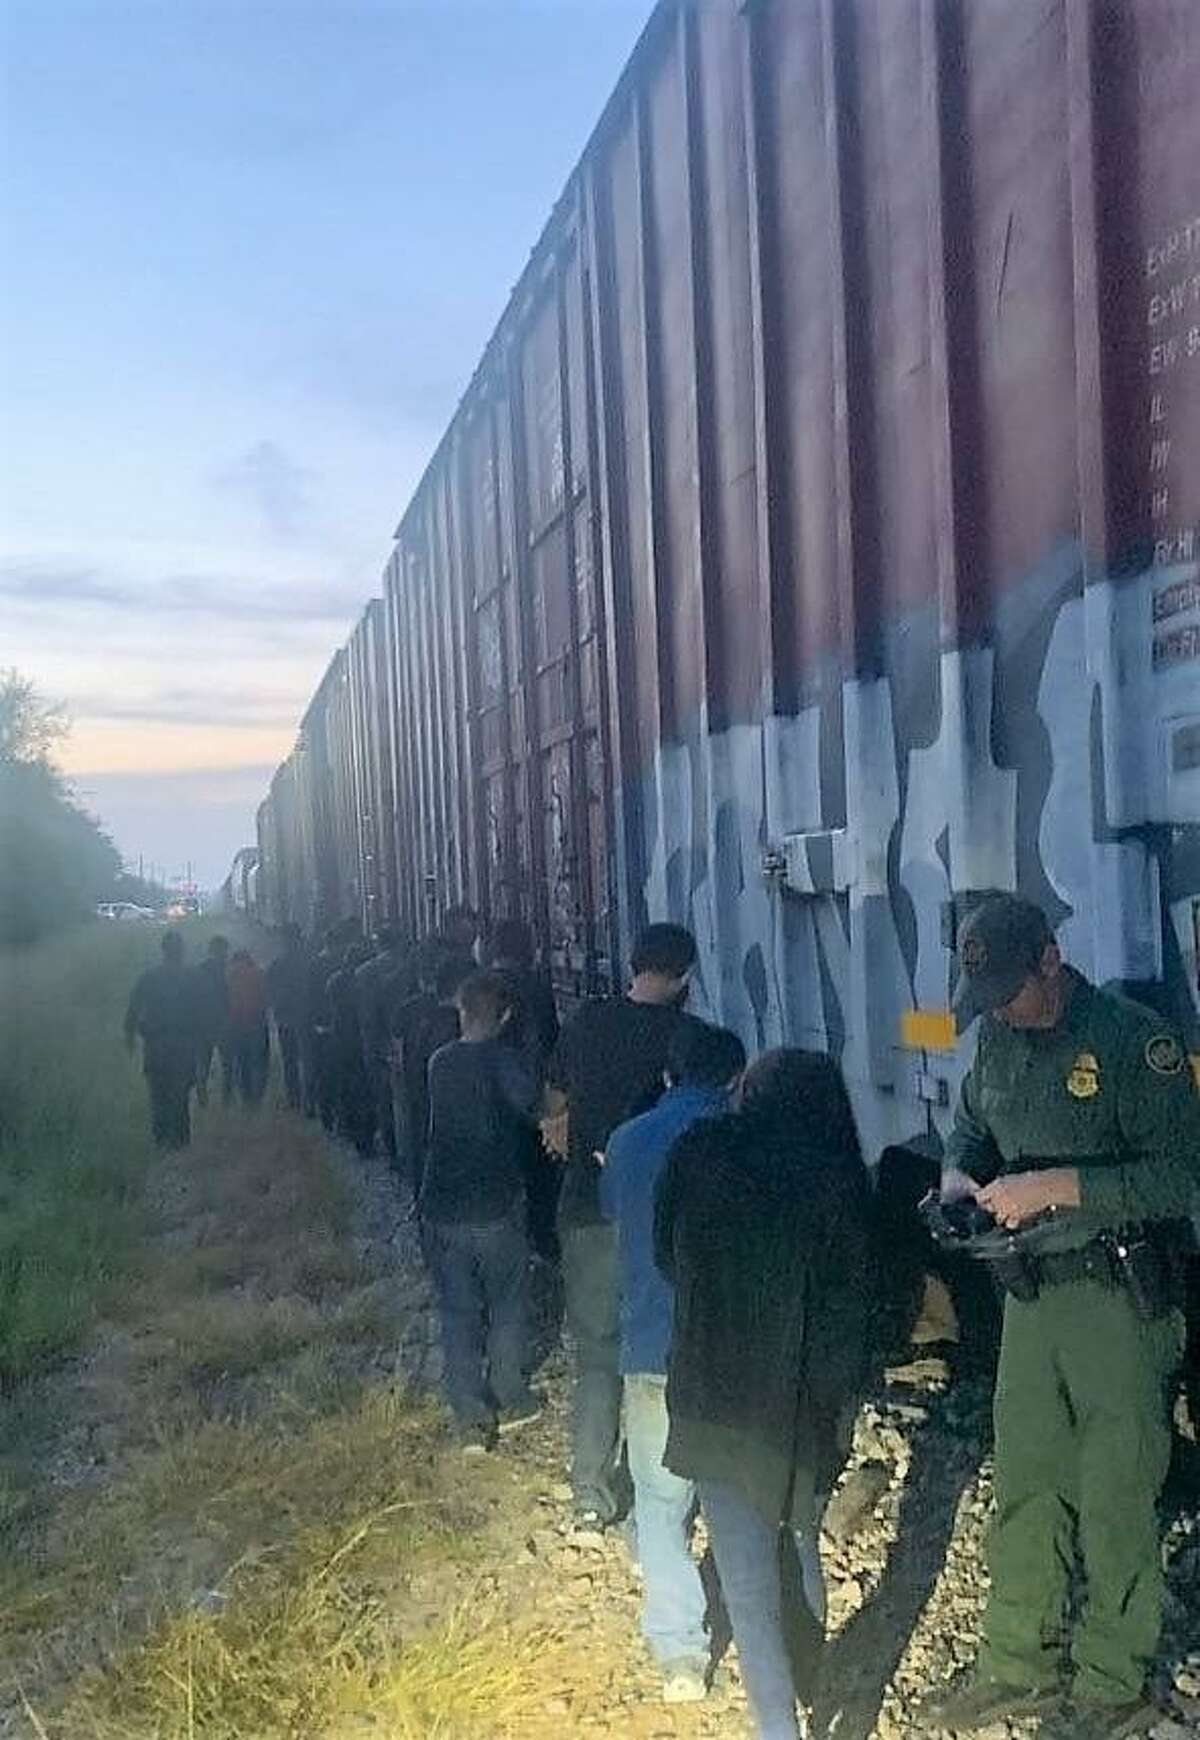 U.S. Border Patrol agents discovered 18 migrants while conducting train inspections near Hebbronville.